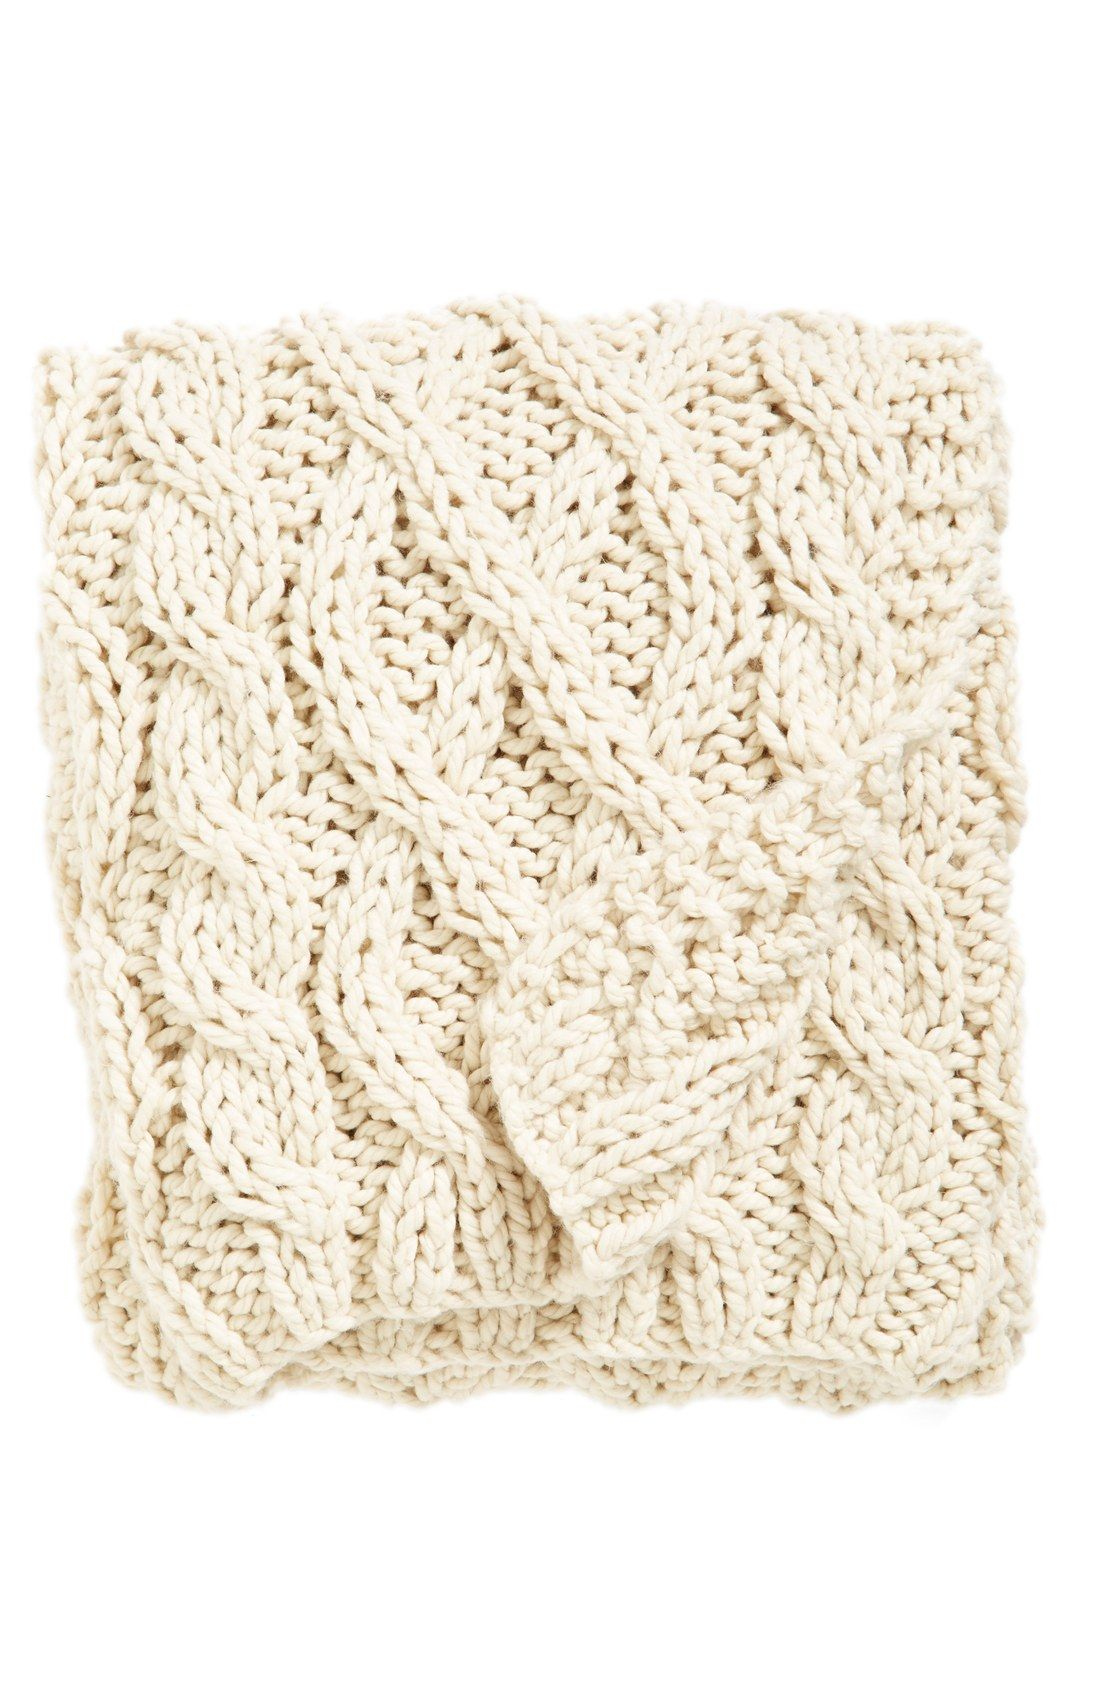 Nordstrom at Home Hand Knit Cable Throw   Christmas list   Pinterest